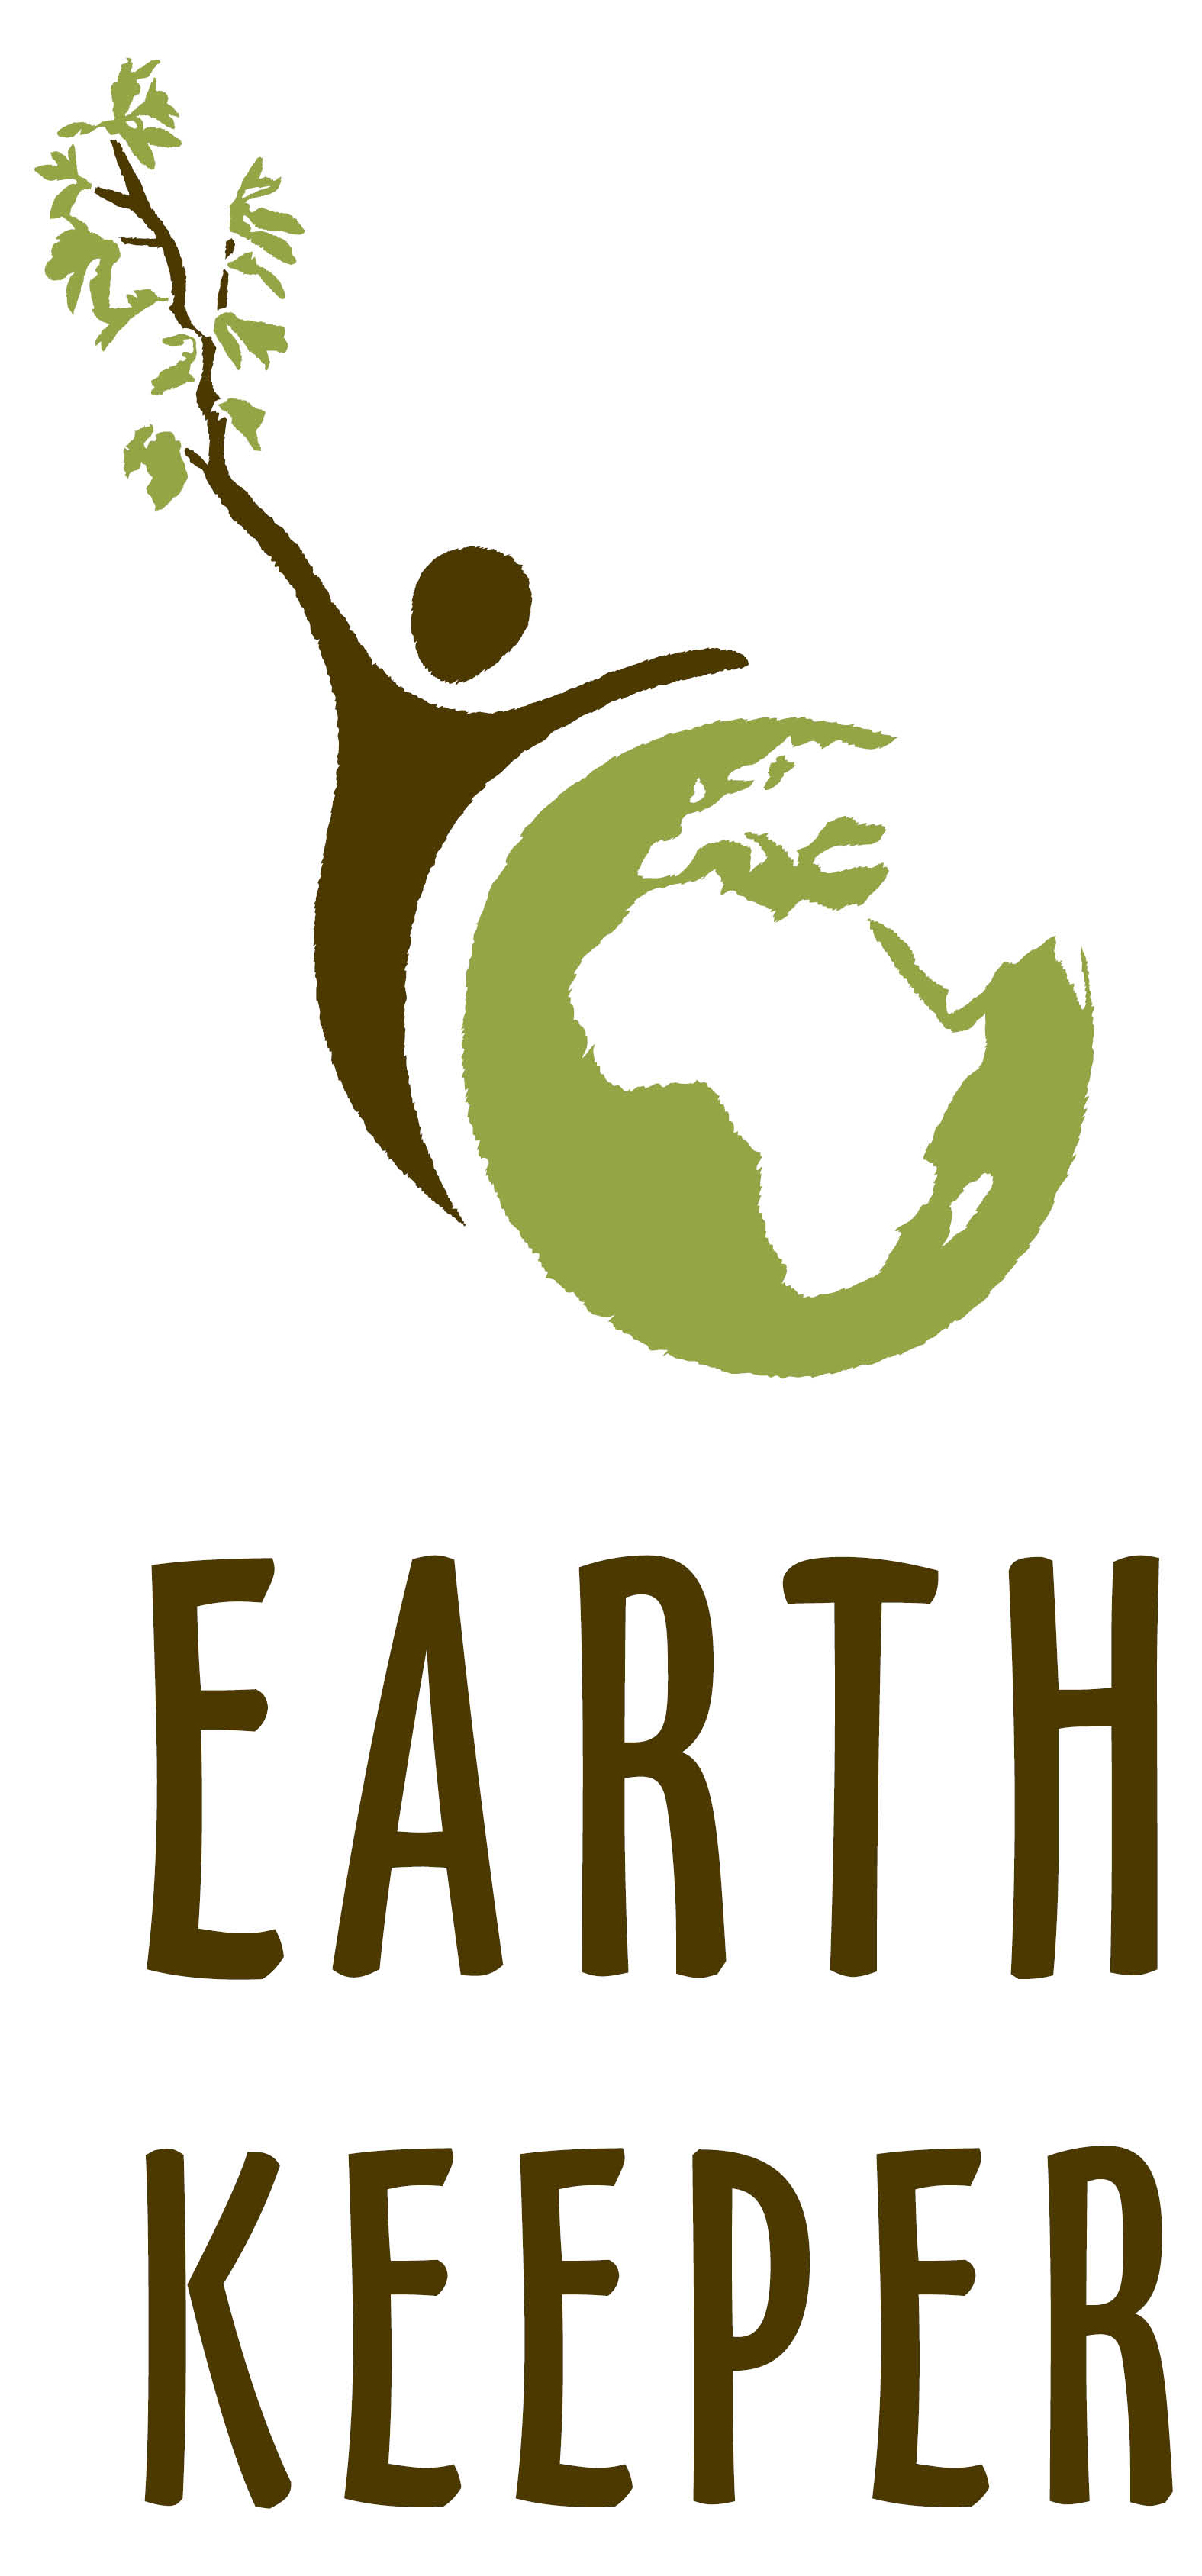 Earth Keeper logo JPEG